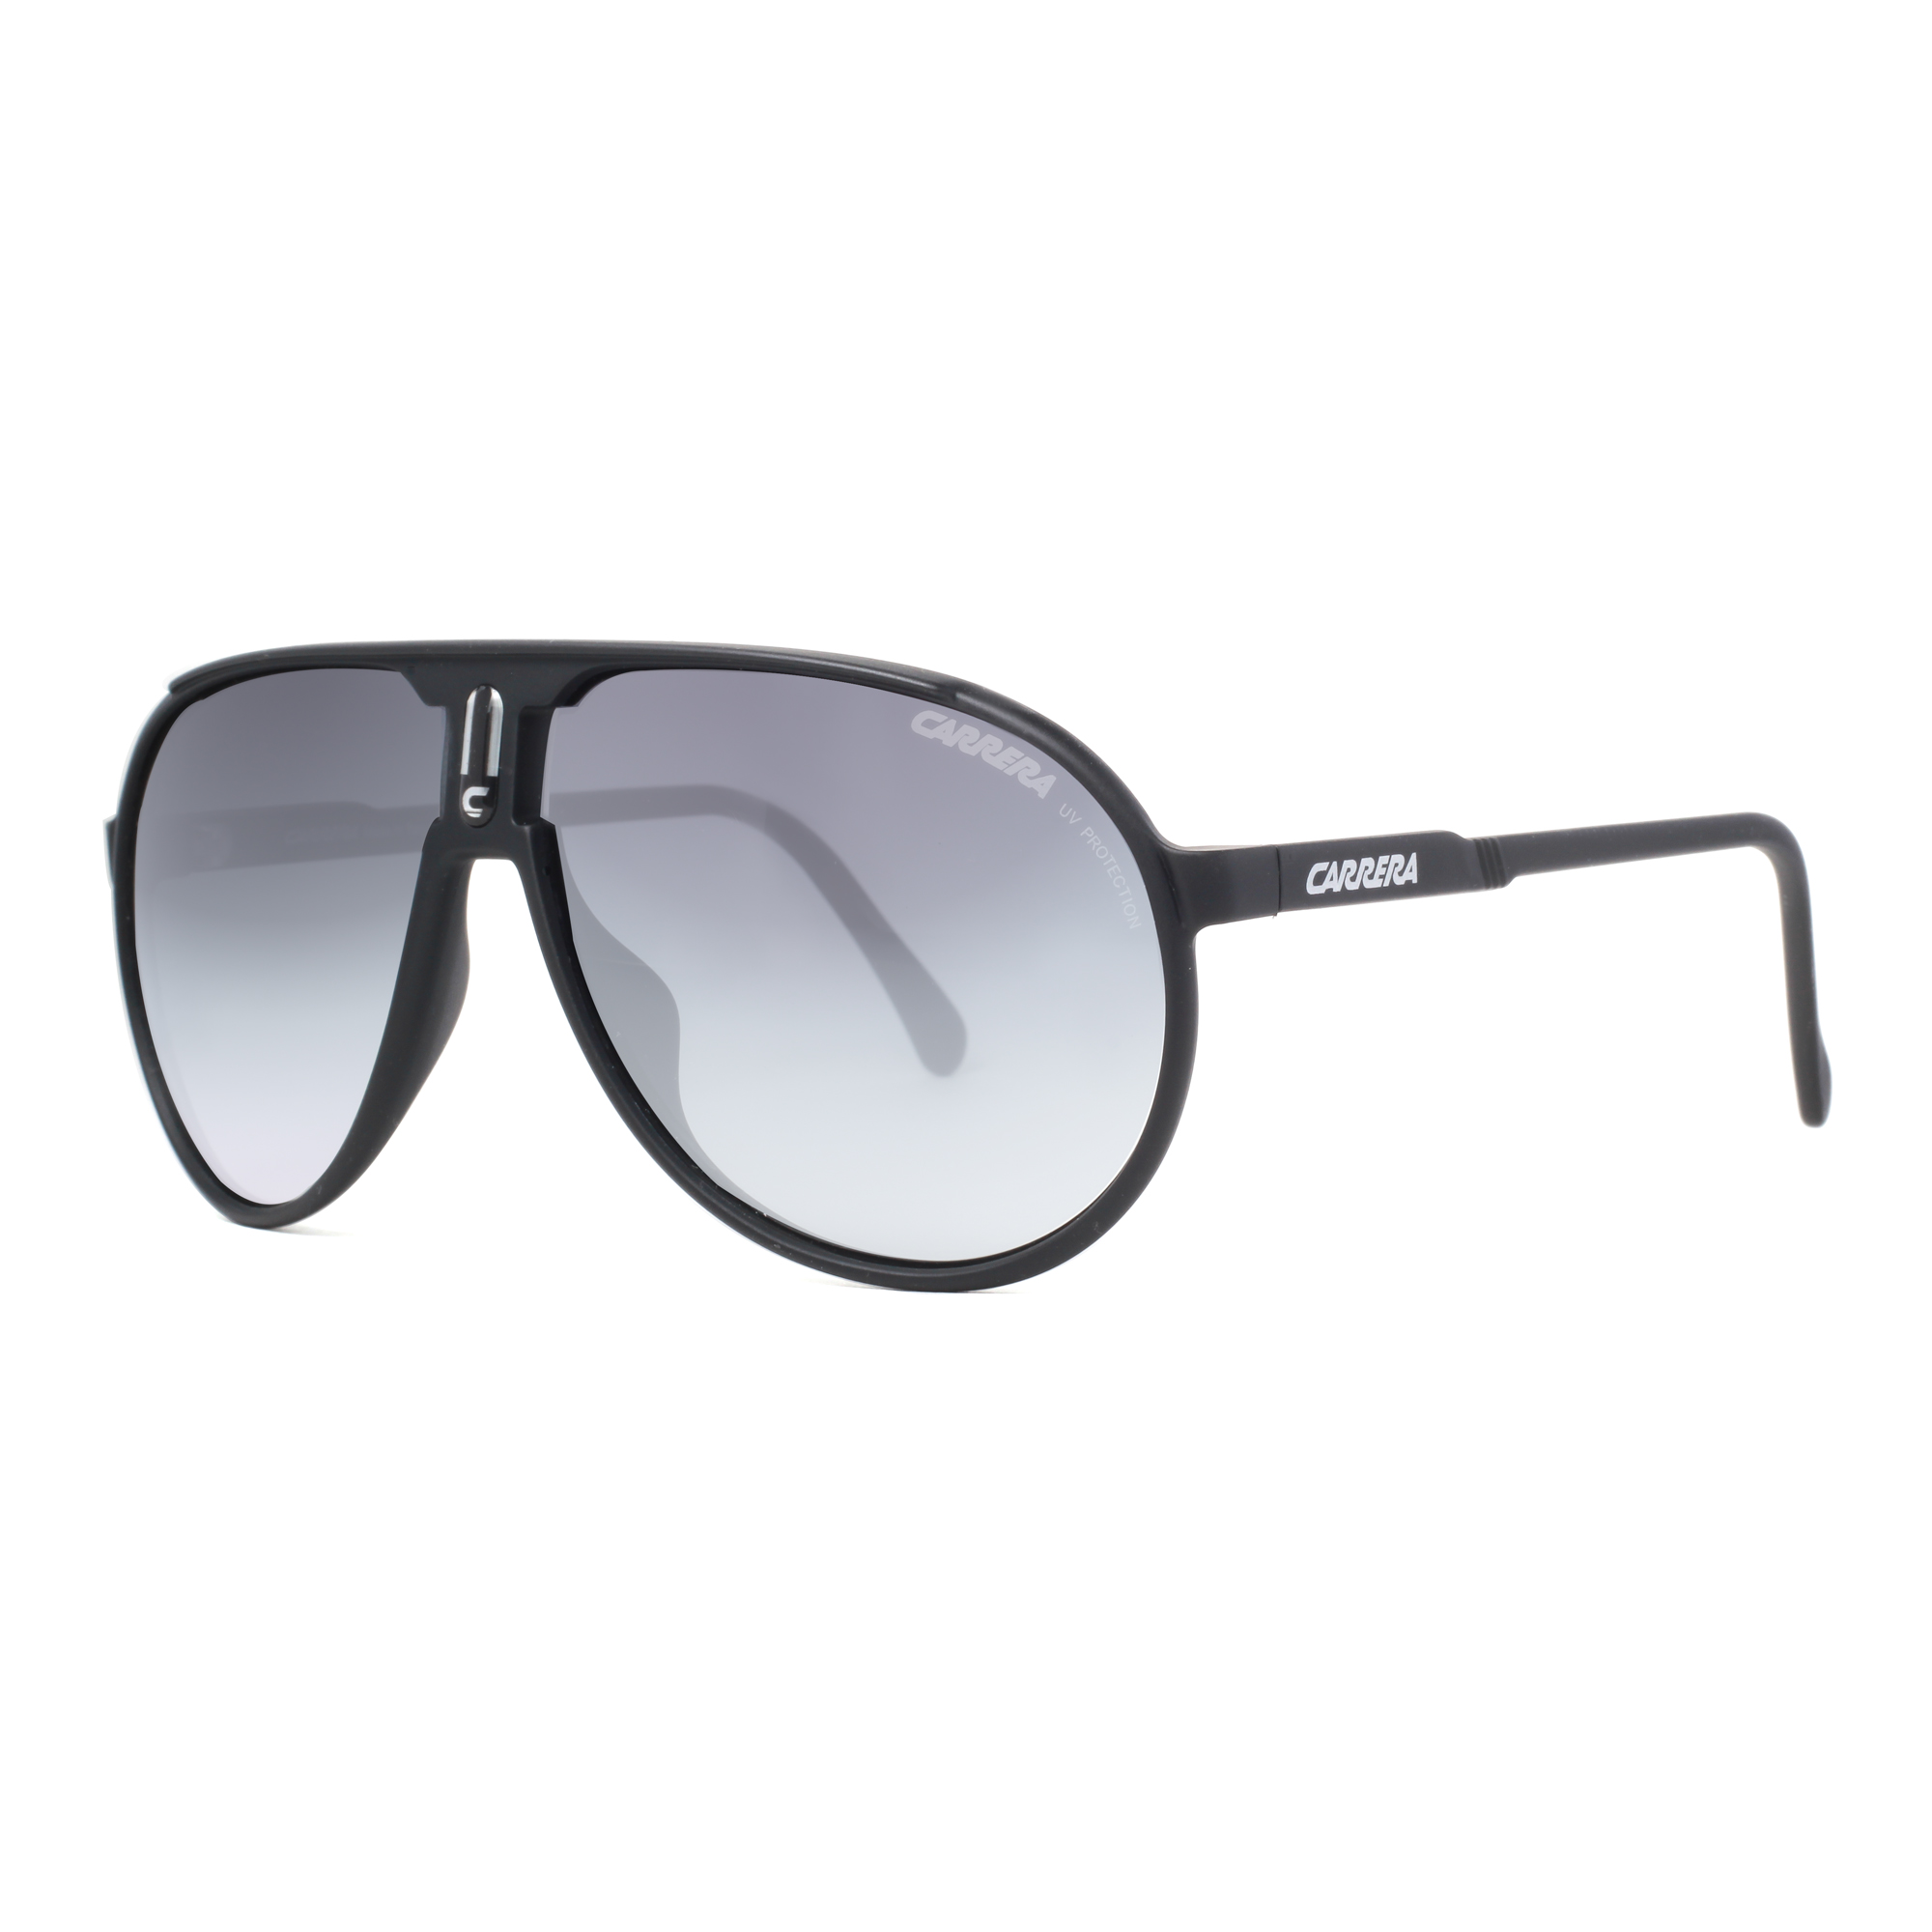 Carrera Champion Aviator Sunglasses Sale Www Panaust Com Au